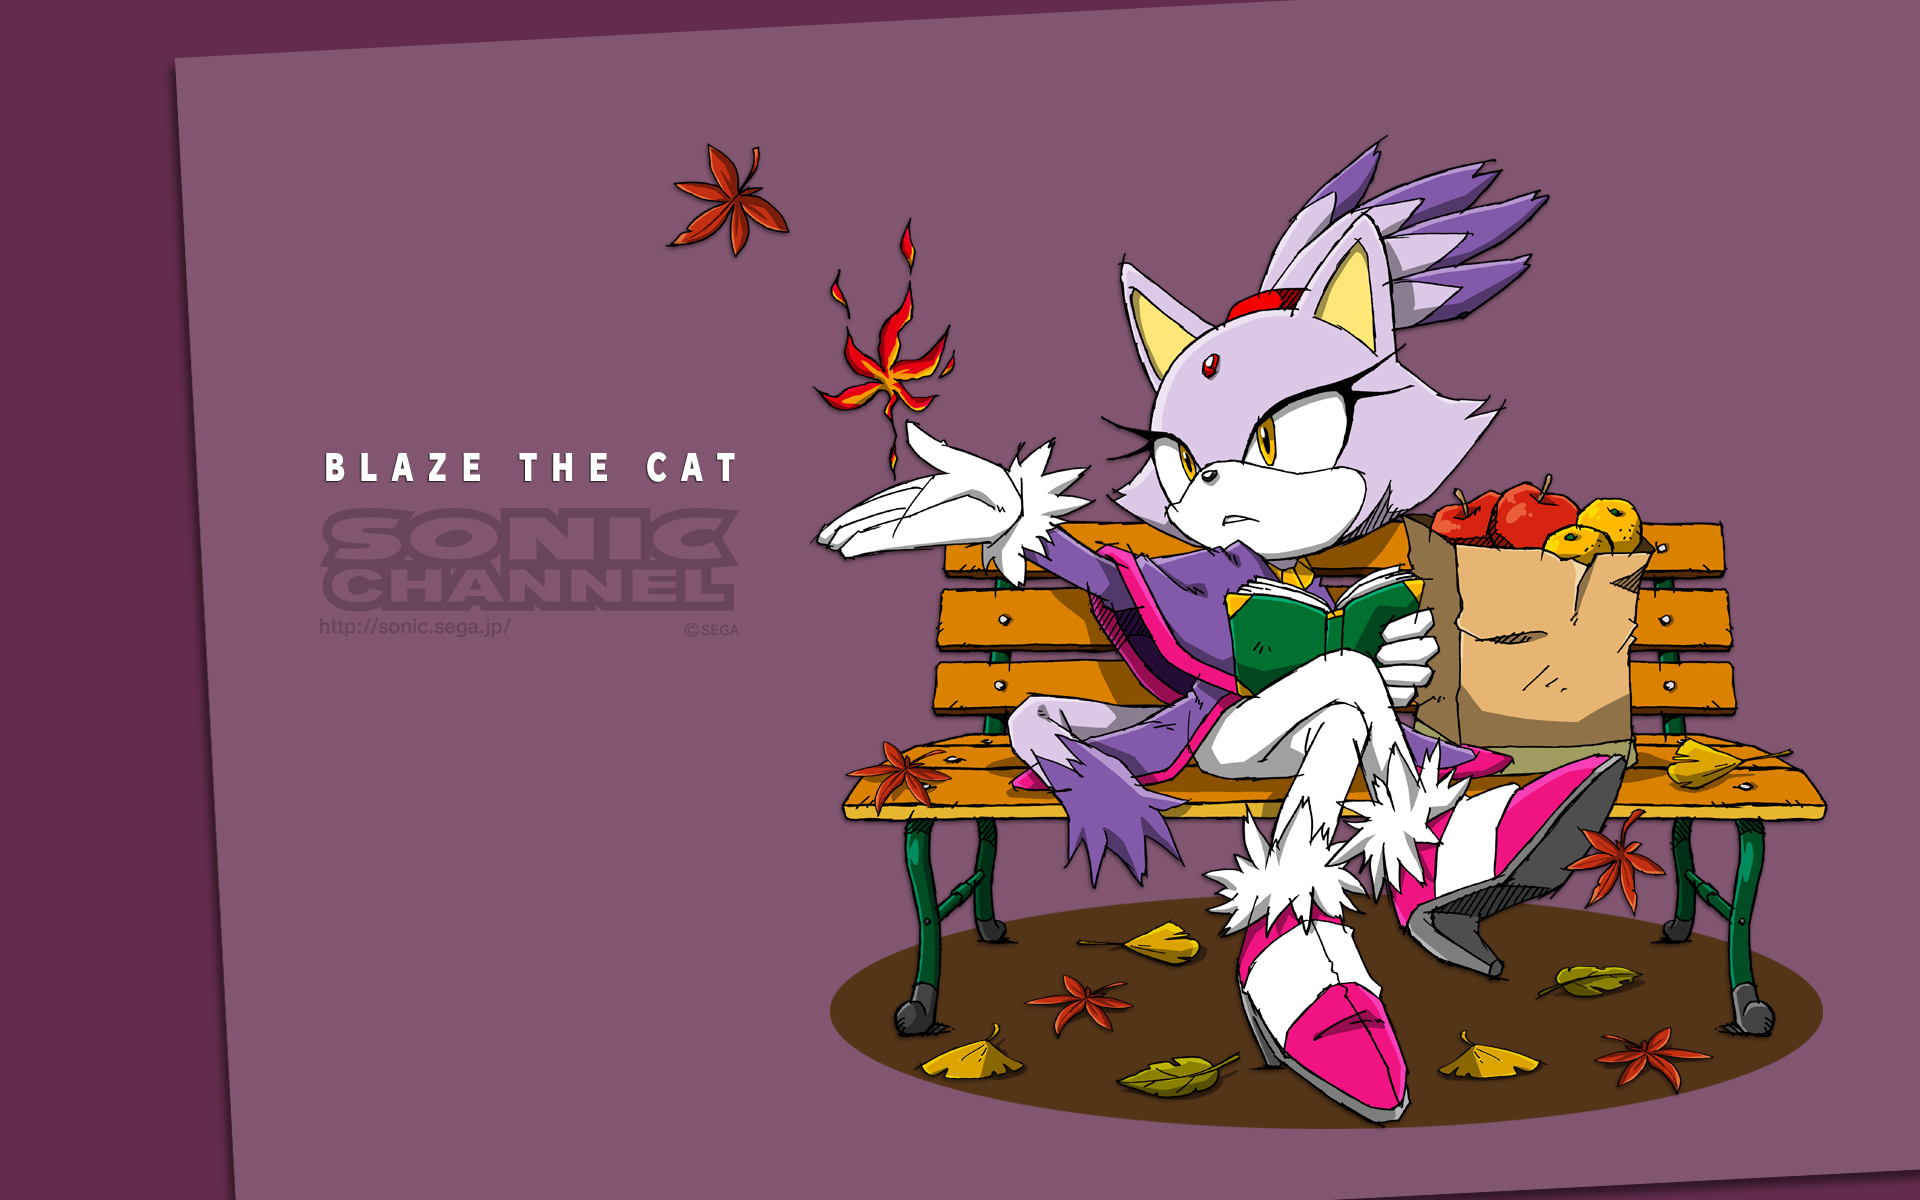 Wallpapers Sonic Channel Last Minute Continue